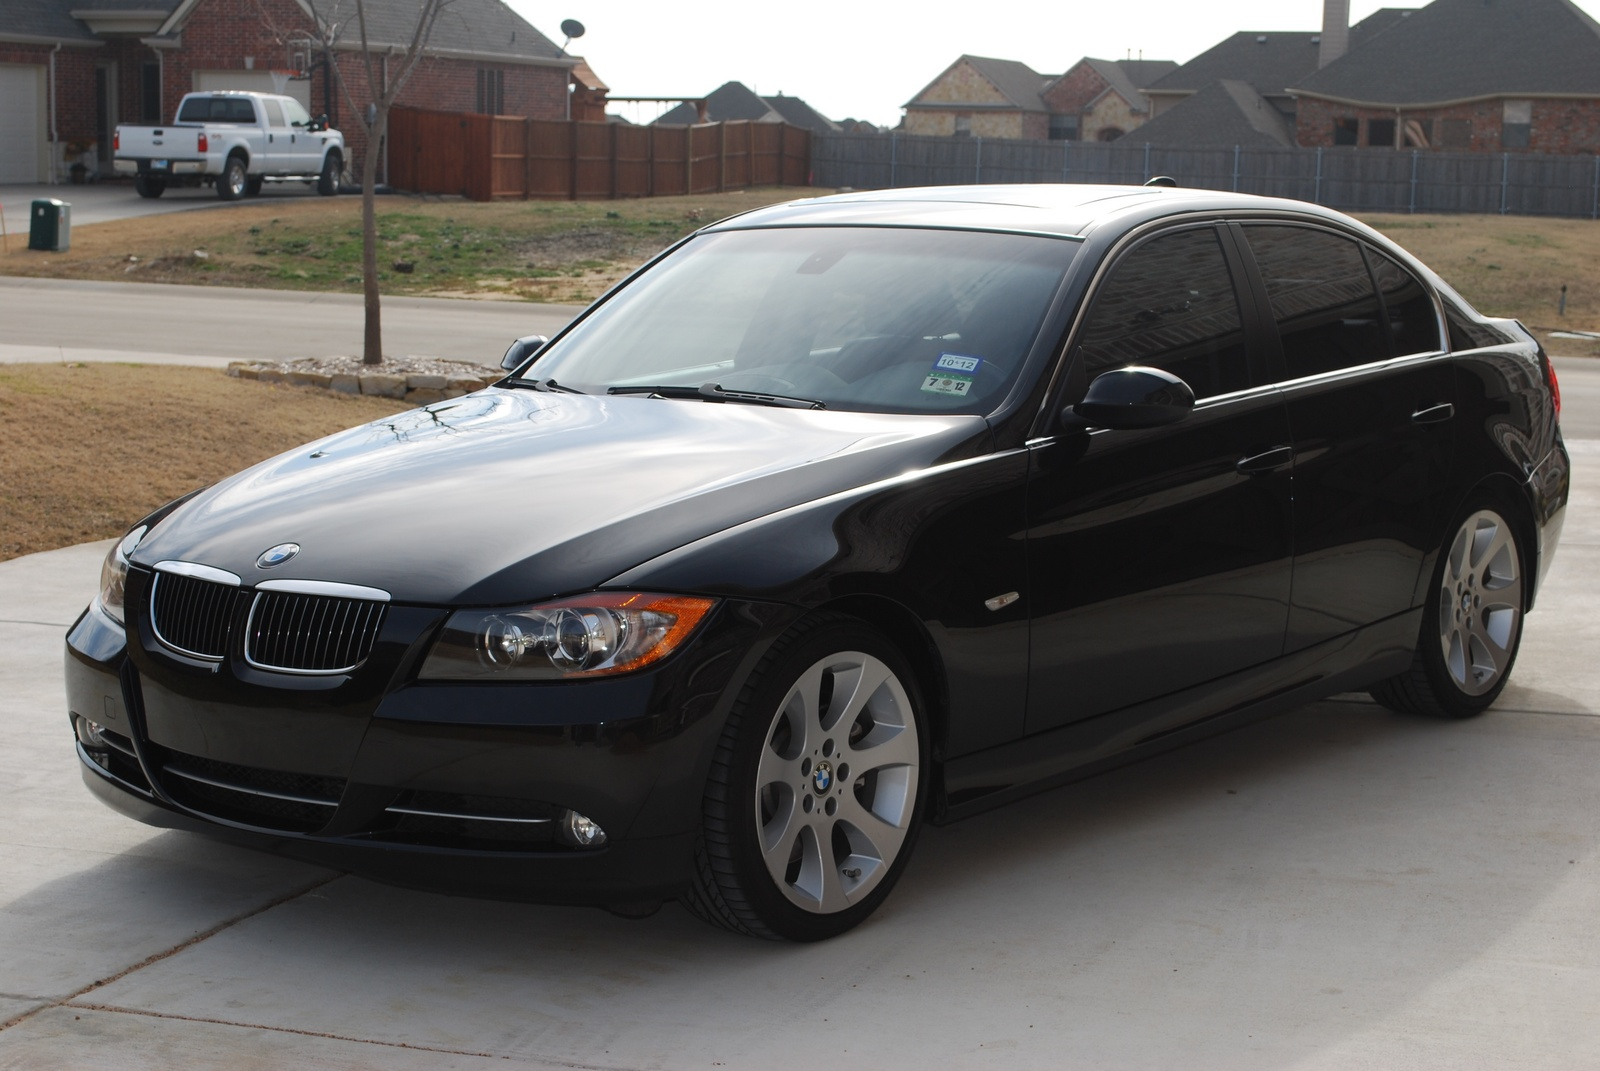 BMW 3 series 328xi 2008 photo - 3